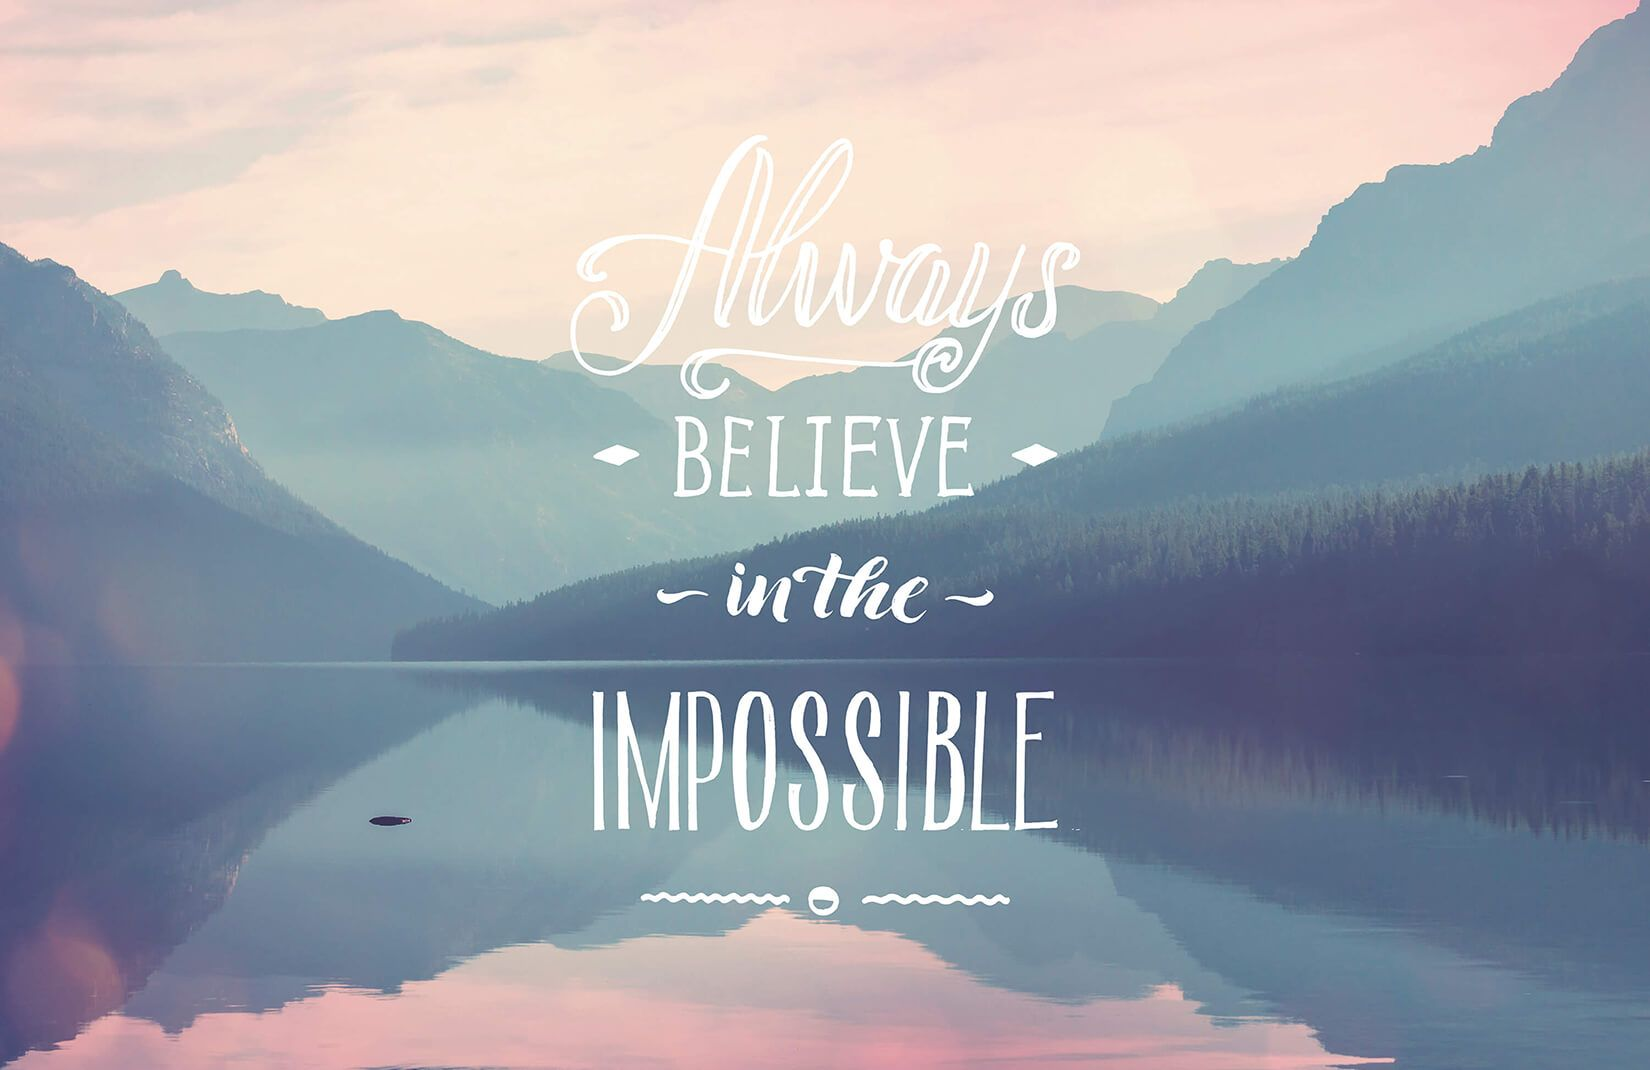 The Impossible' Inspirational Quote Wallpaper | Murals Wallpaper